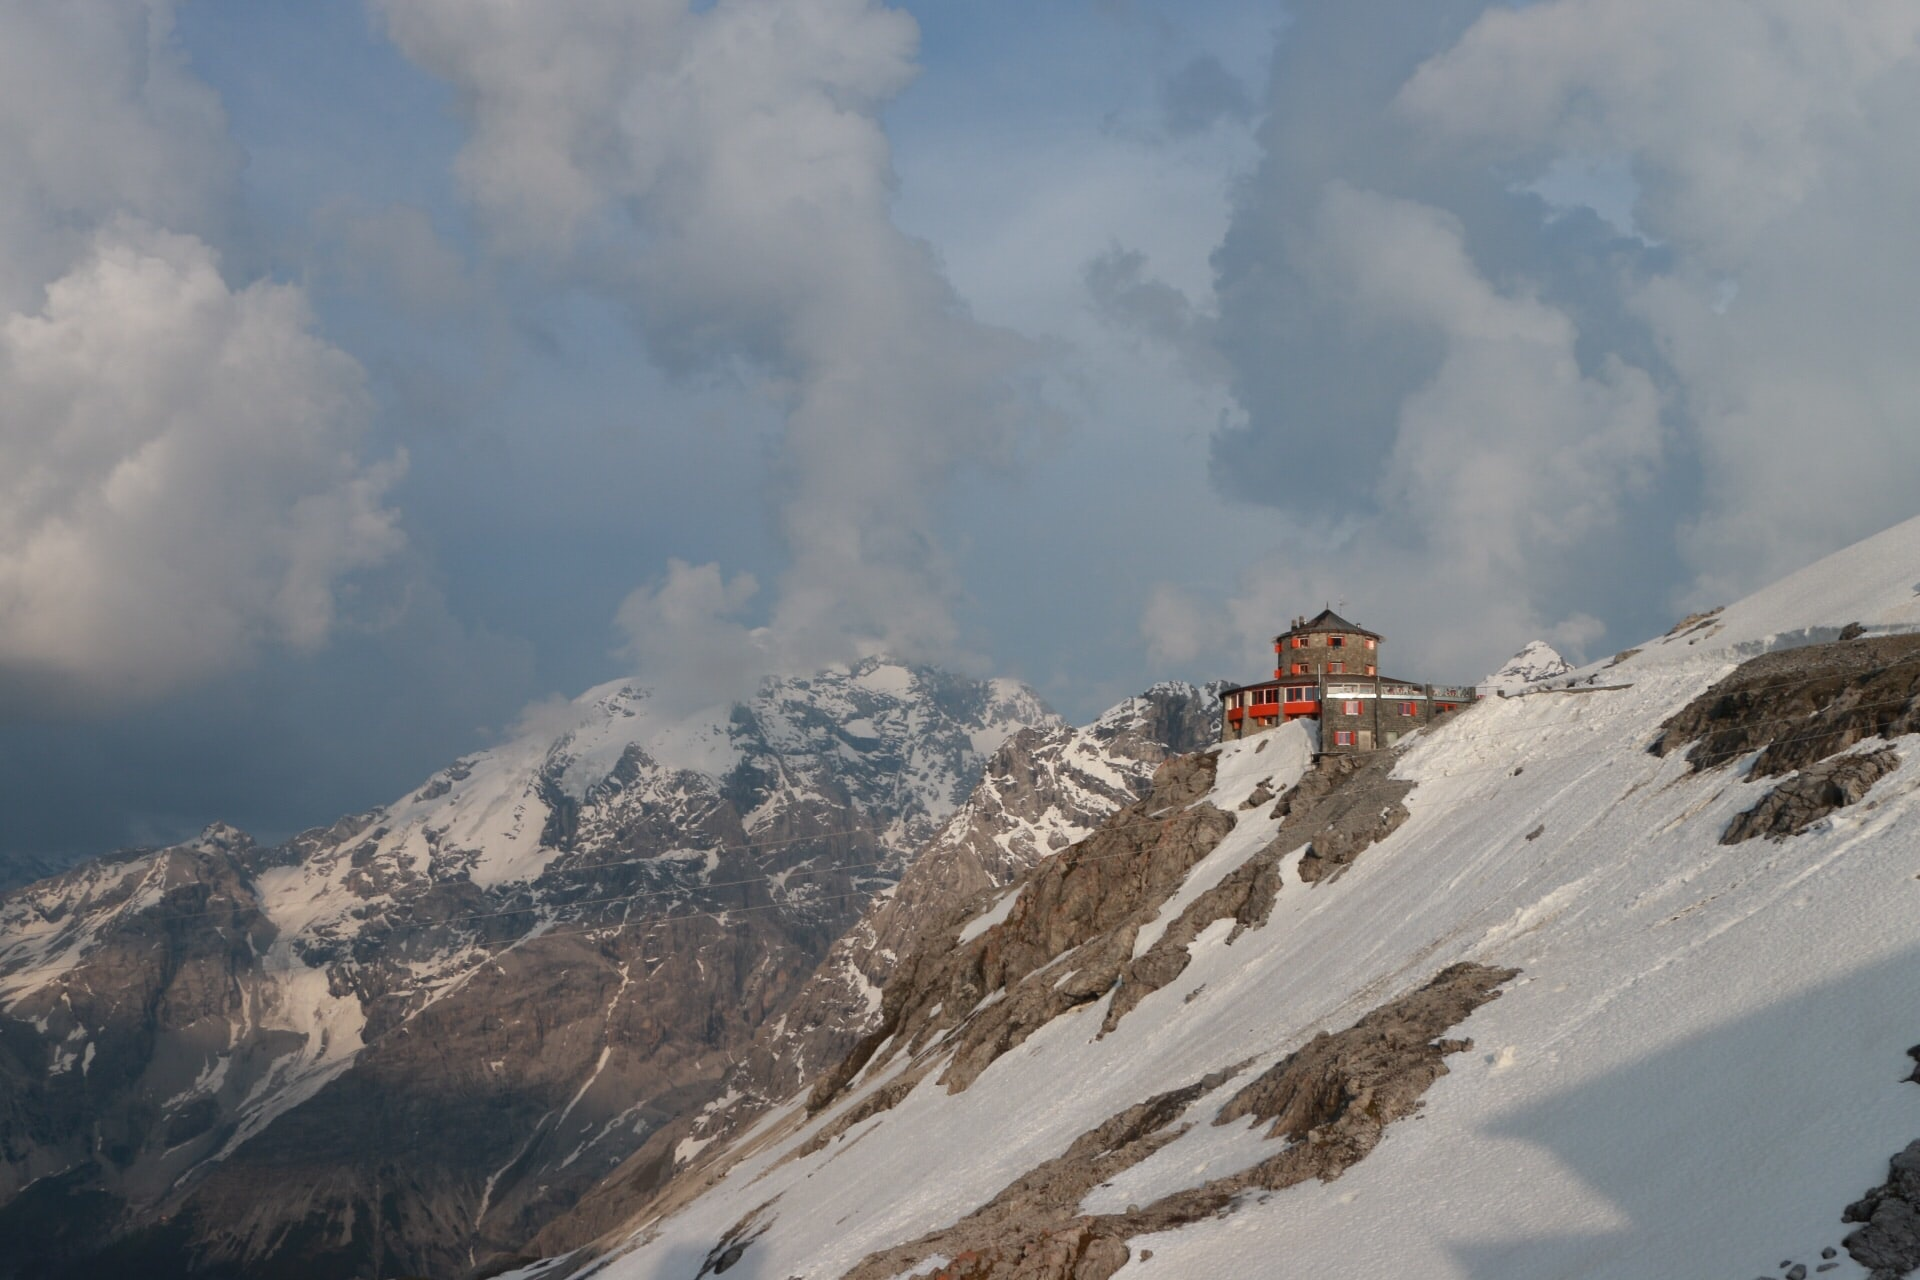 A building touches the clouds on top of a snow covered, rocky mountain